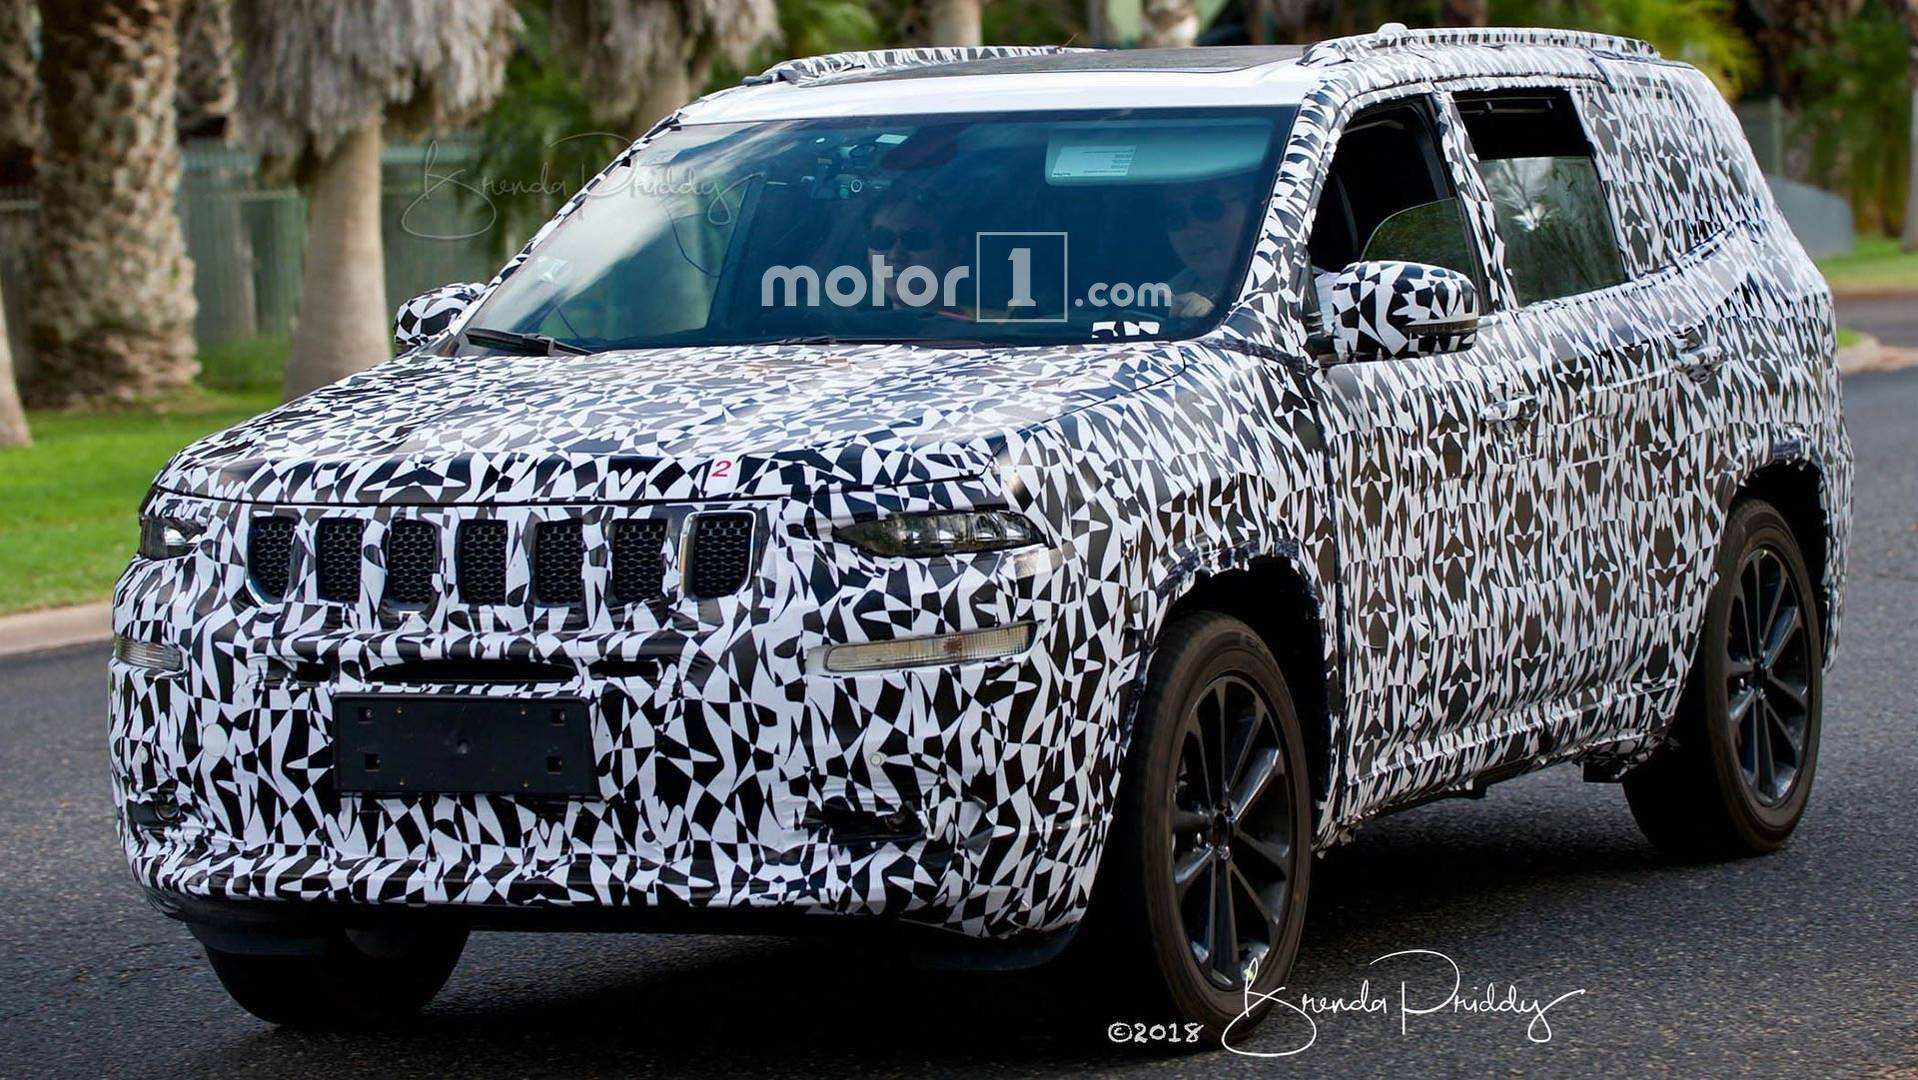 54 All New 2020 Jeep Wagoneer 2018 Exterior by 2020 Jeep Wagoneer 2018